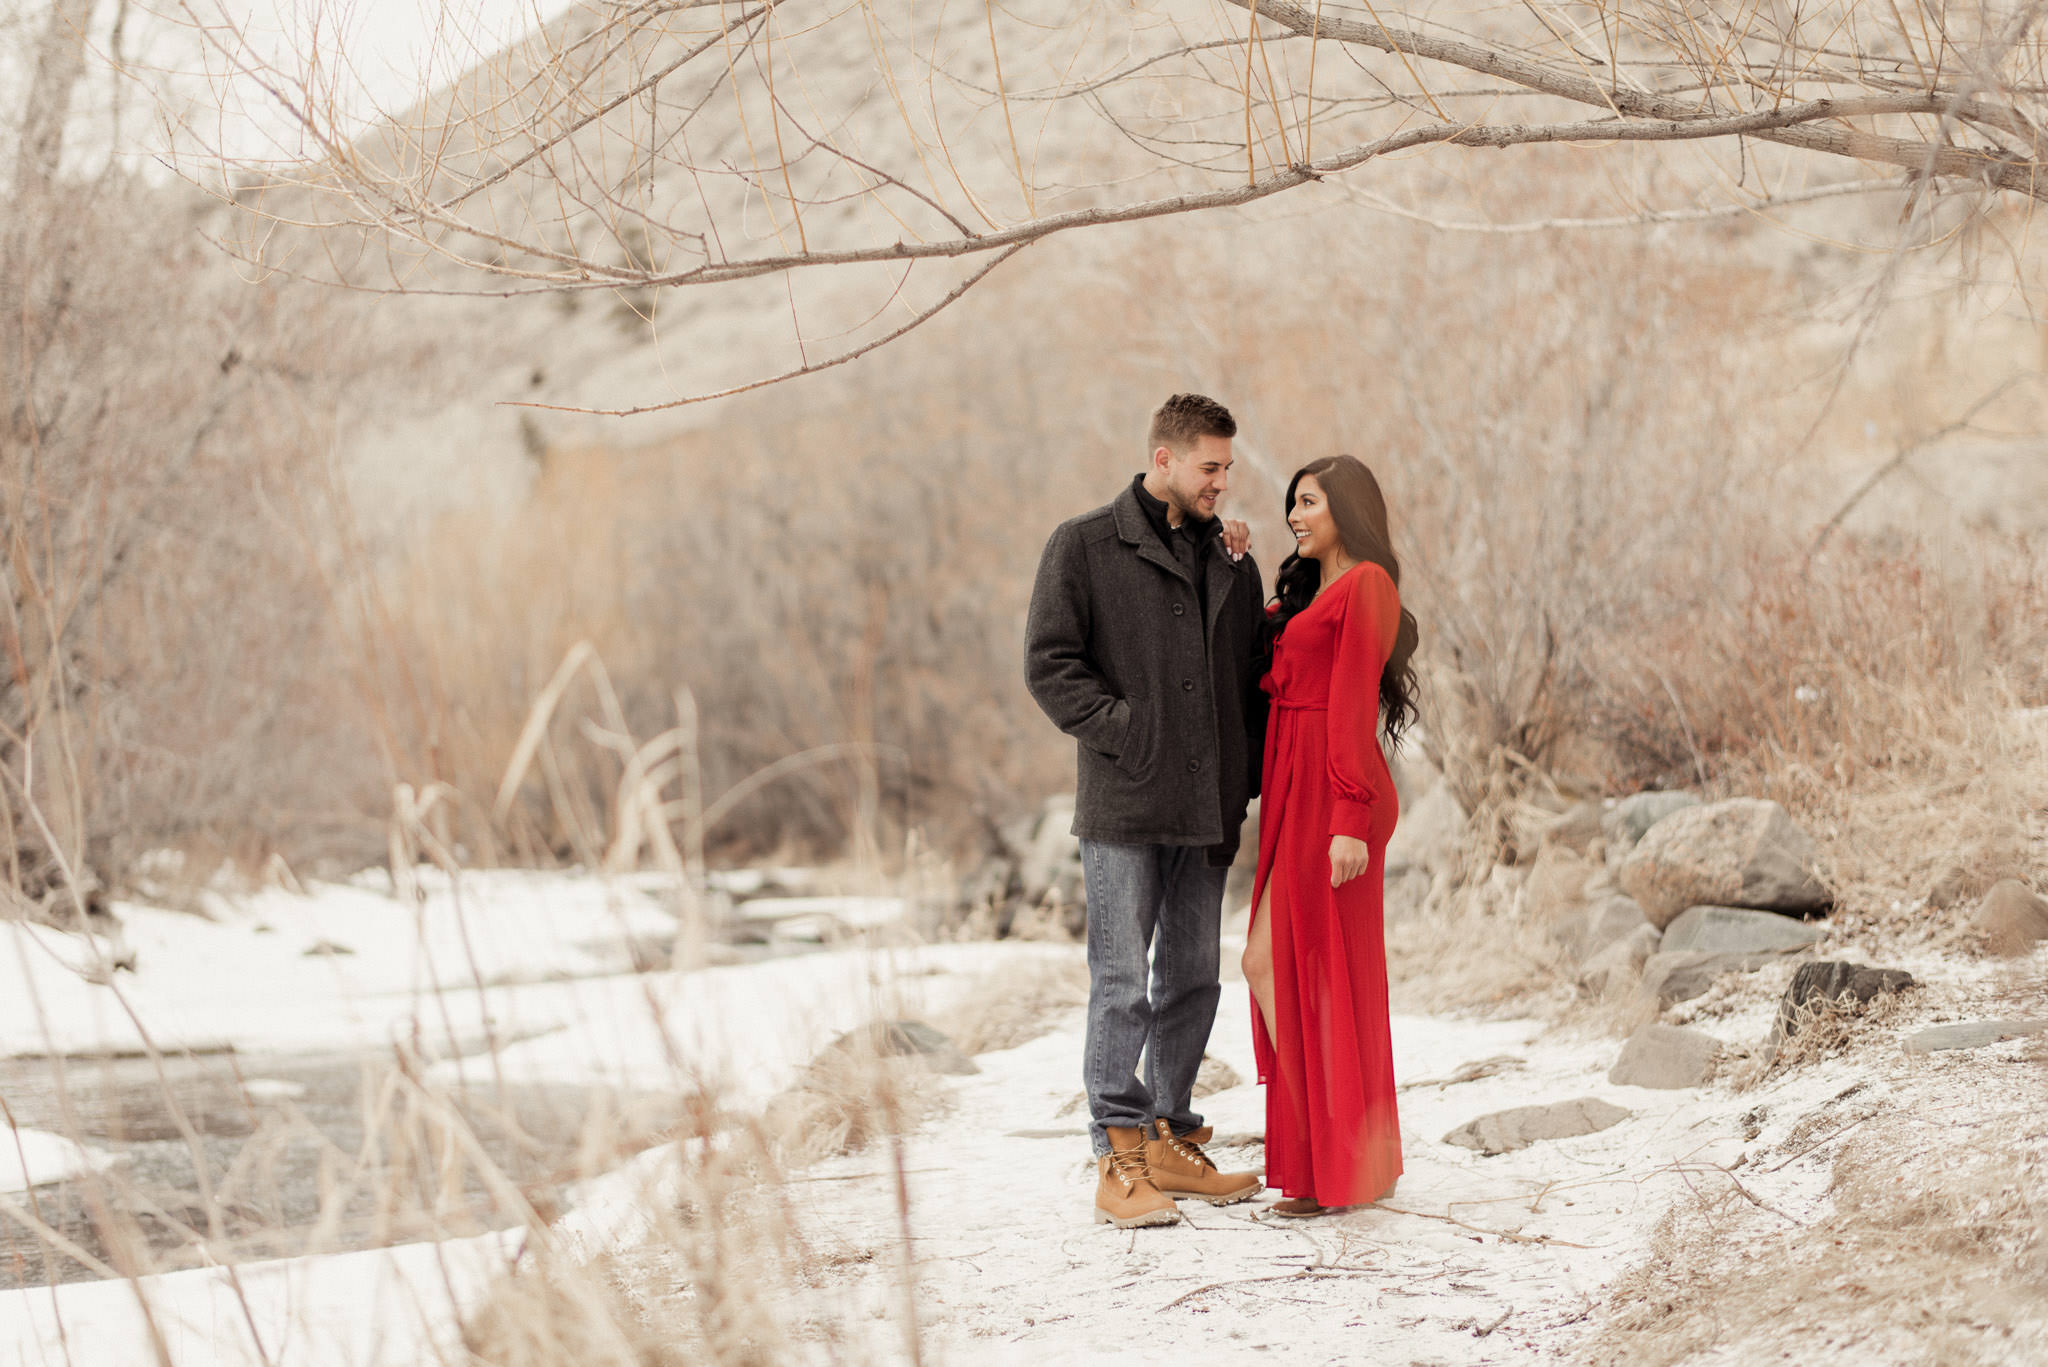 sandra-ryan-colorado-winter-snow-engagement-couples-valentines-red-houston-photographer-sm-23.jpg